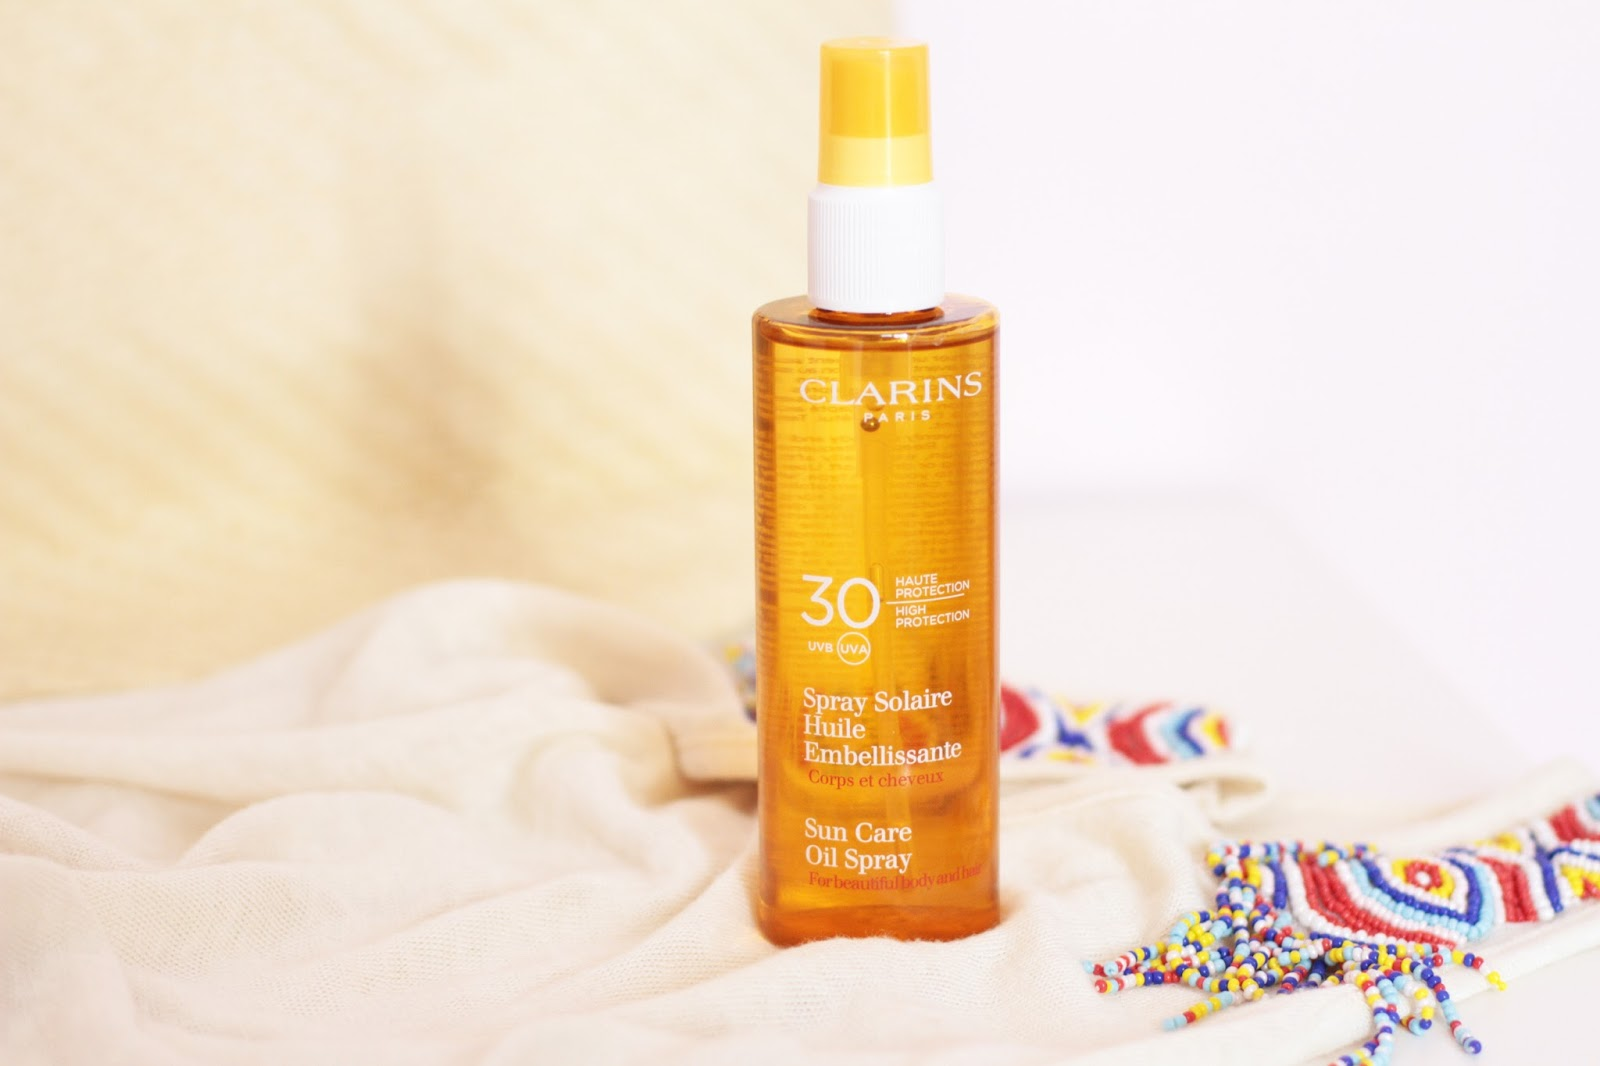 Clarins Spray Solaire Huile Embellissante SPF 30